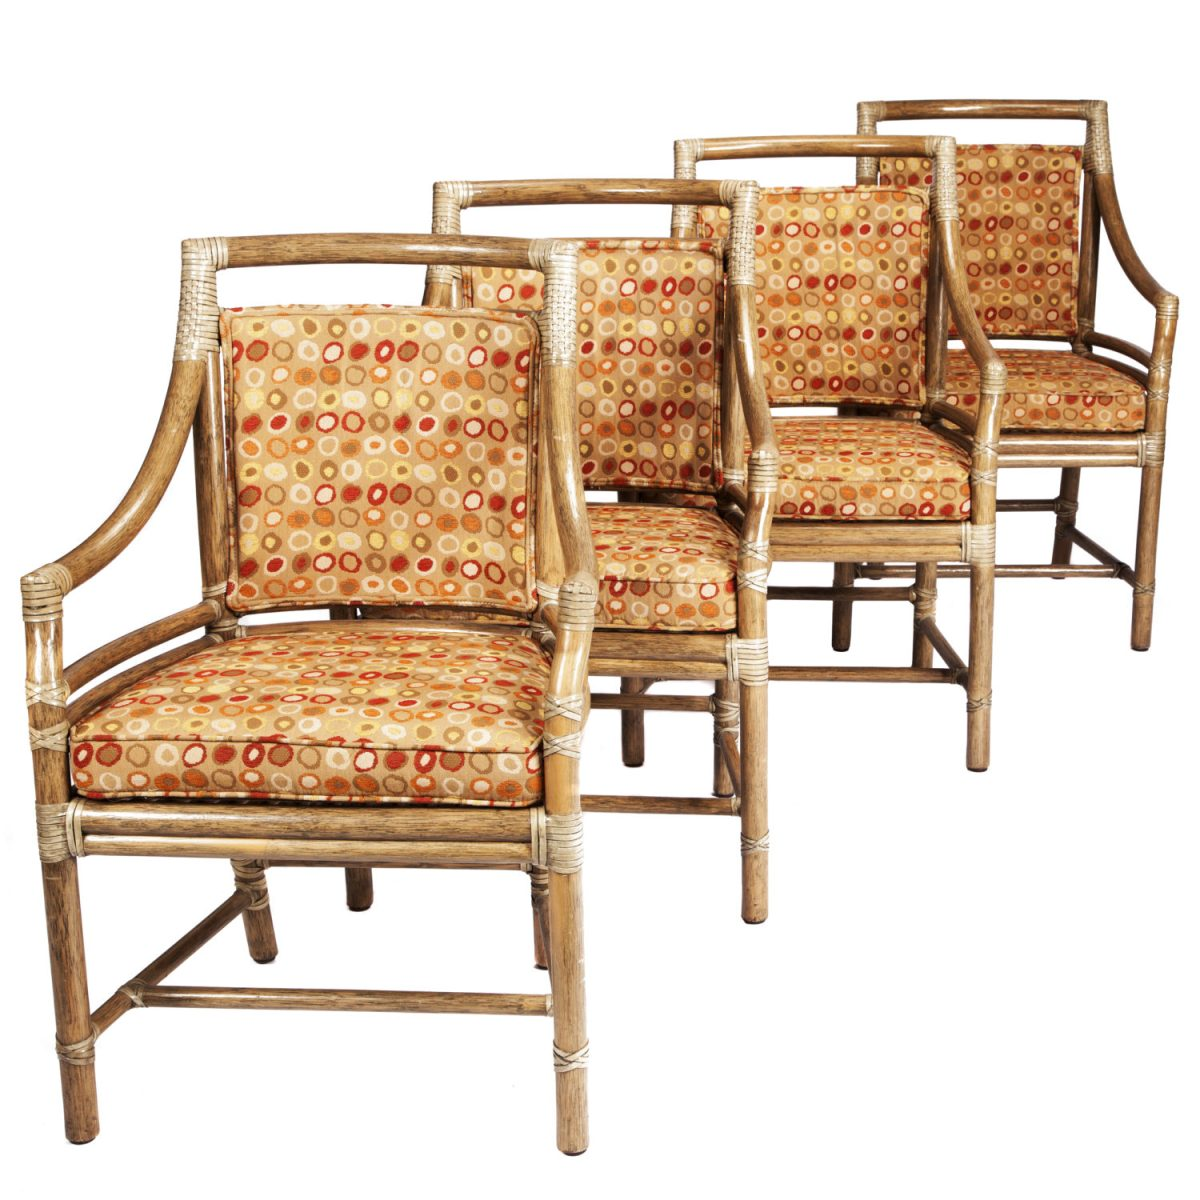 "<p><a href=""https://finesf.com/lot/set-of-four-mcguire-armchairs-4019124"">Set of Four McGuire Target Chairs  Designed by Elinor McGuire (M-59B/SL)</a></p>"